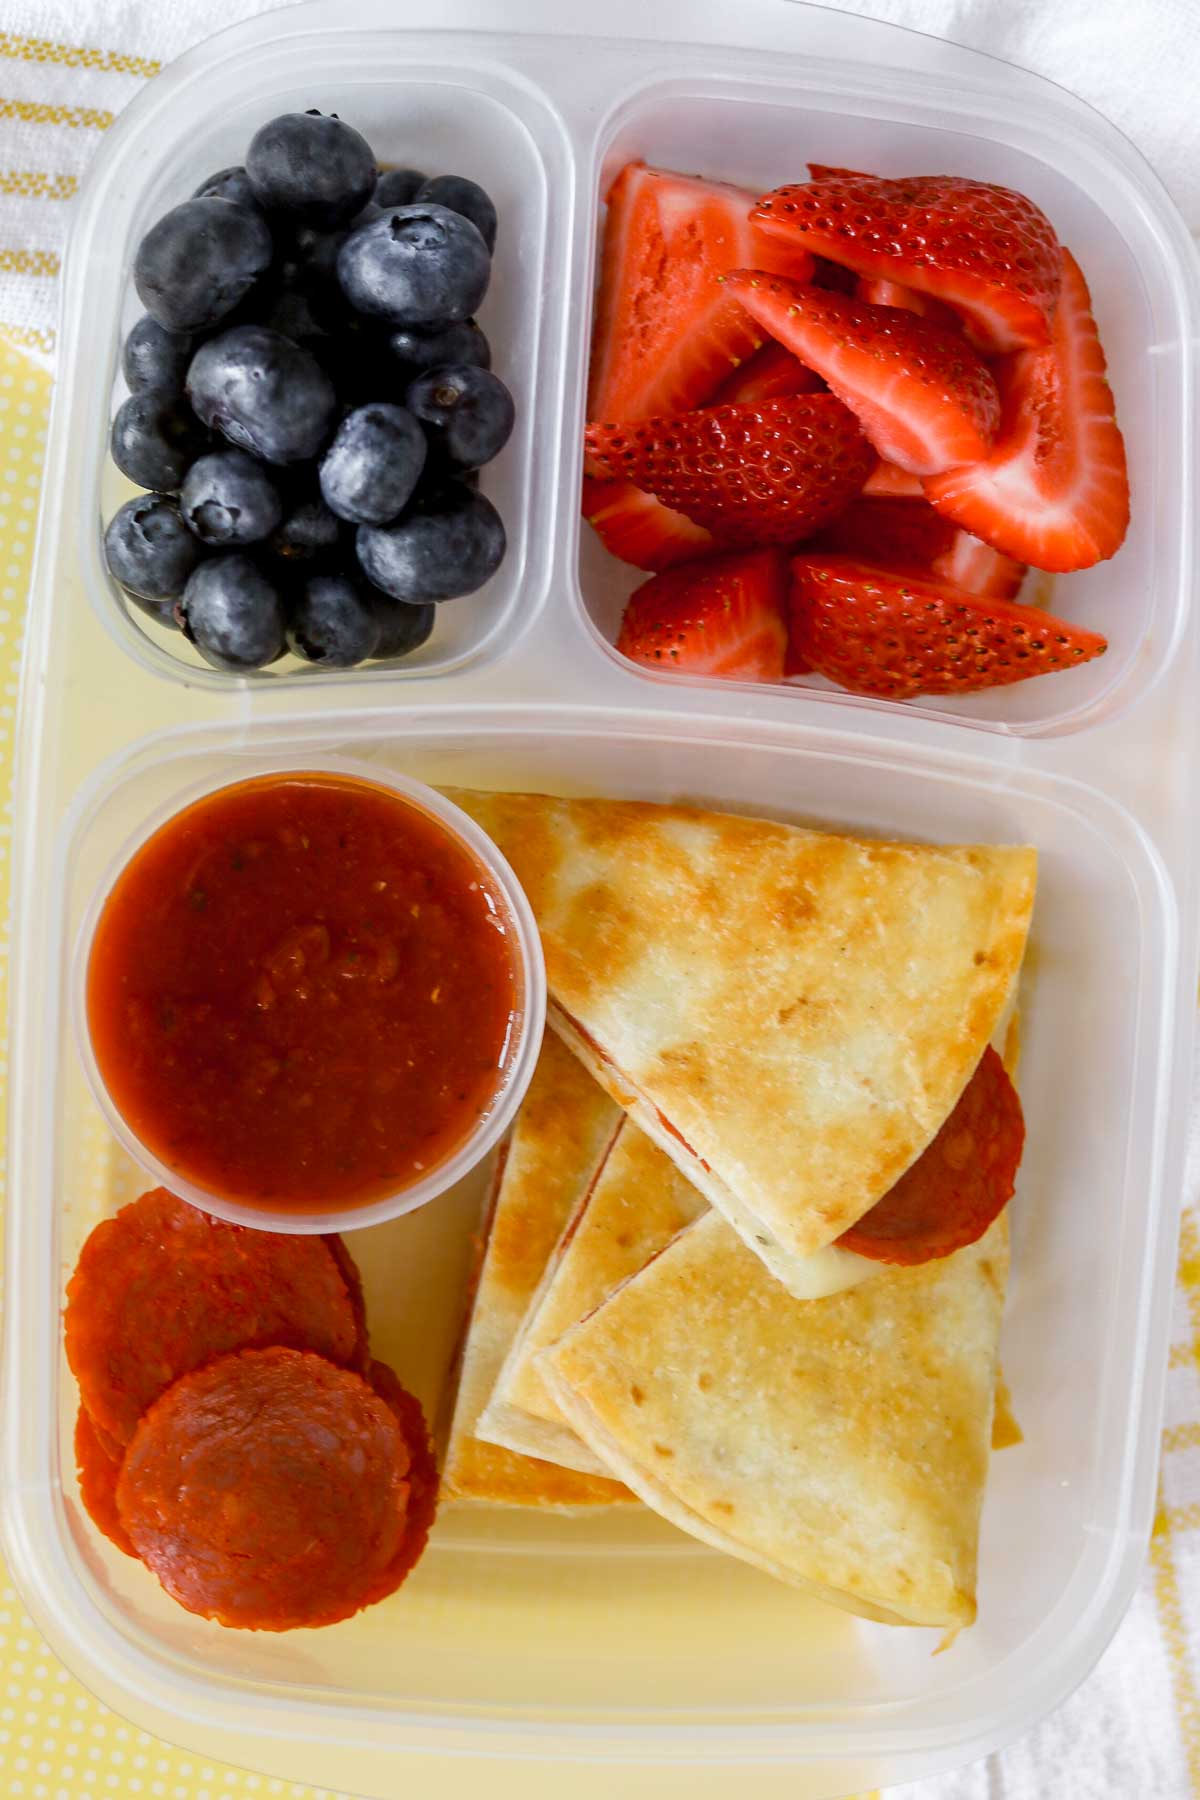 Pepperoni pizza quesadillas in a lunch container with strawberries and blueberries.